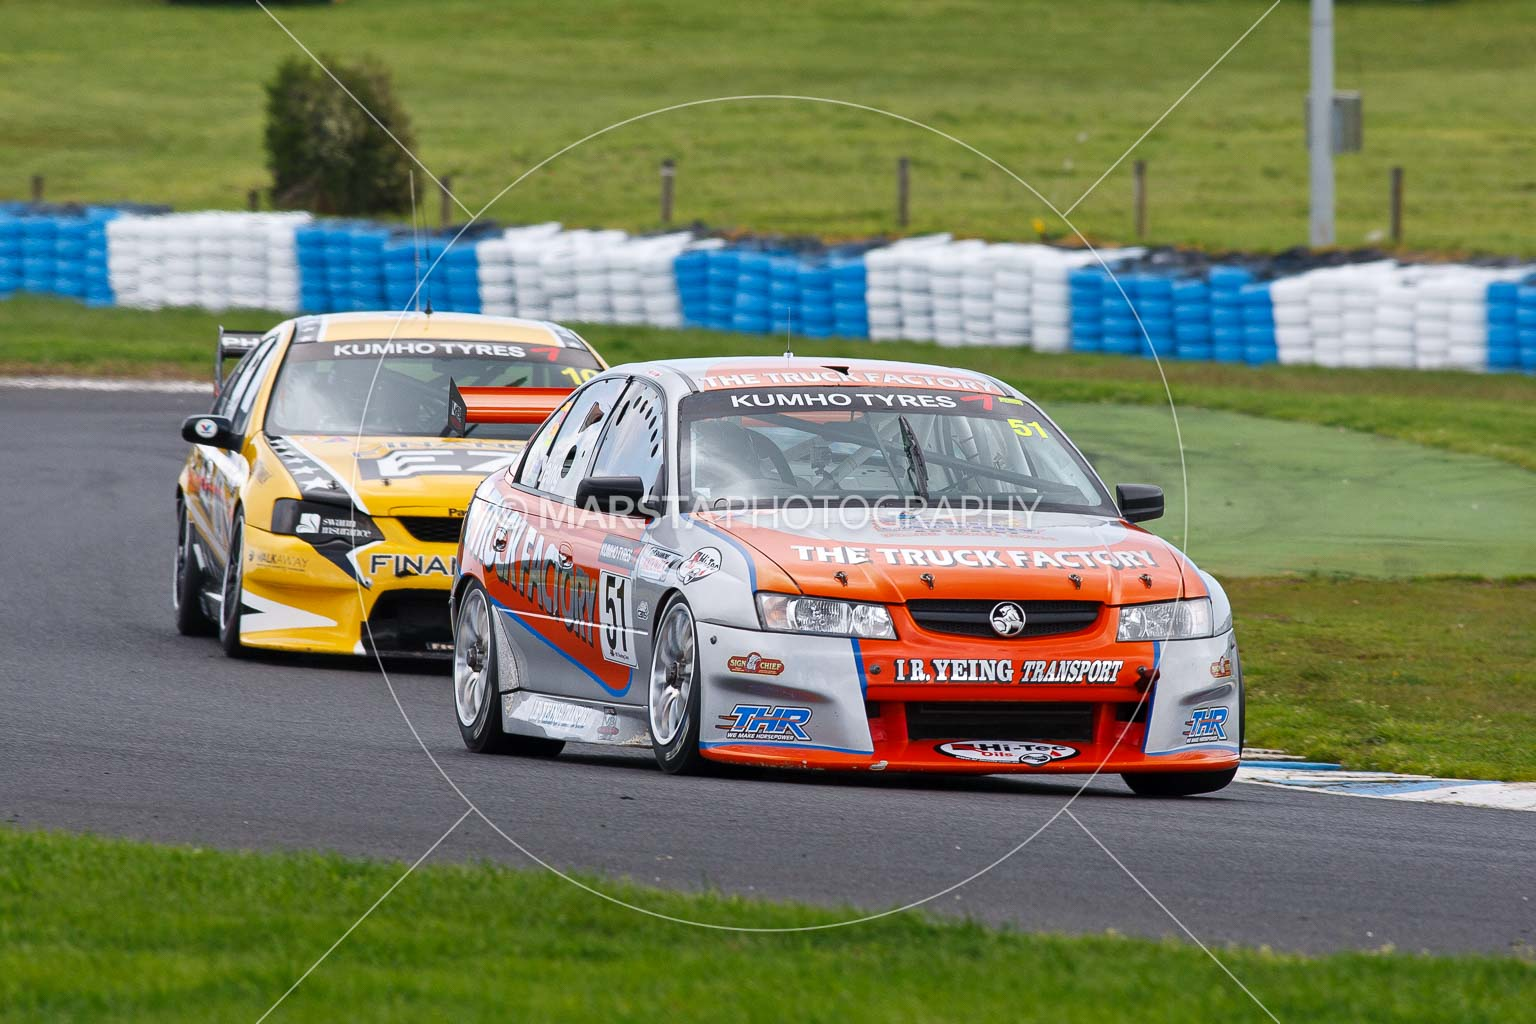 (51);23 September 2012;51;Australia;Holden Commodore VZ;Ian Yeing;Phillip Island;Shannons Nationals;V8 Touring Cars;VIC;Victoria;auto;motorsport;racing;super telephoto